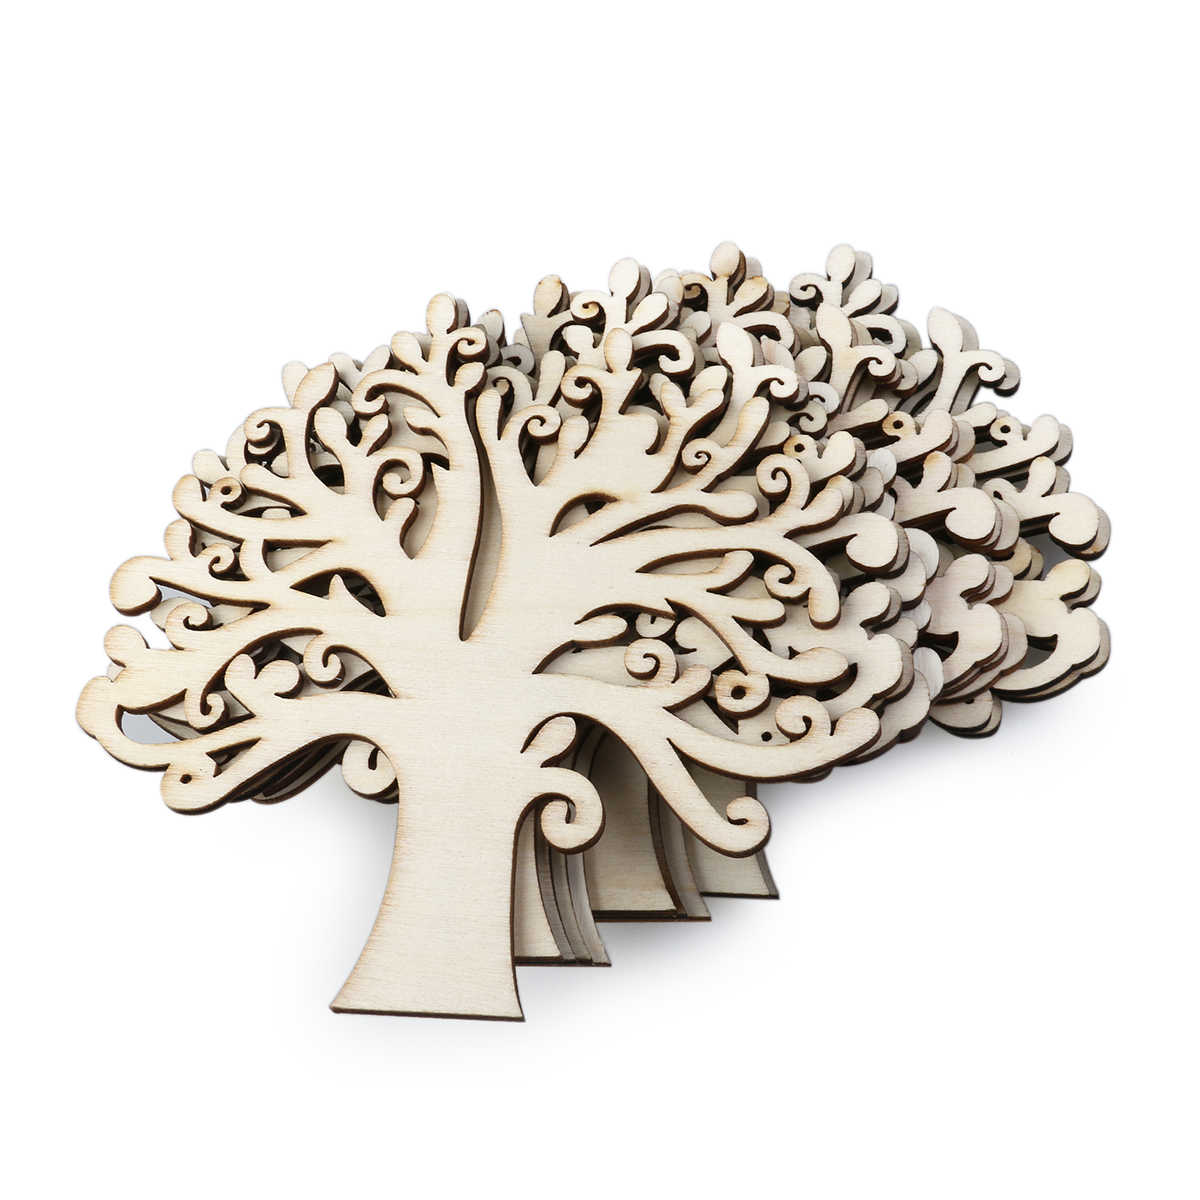 10pcs Blank Wooden Tree Embellishments For DIY Crafts Embellishments For Party Wedding Decoration(Wood Color)